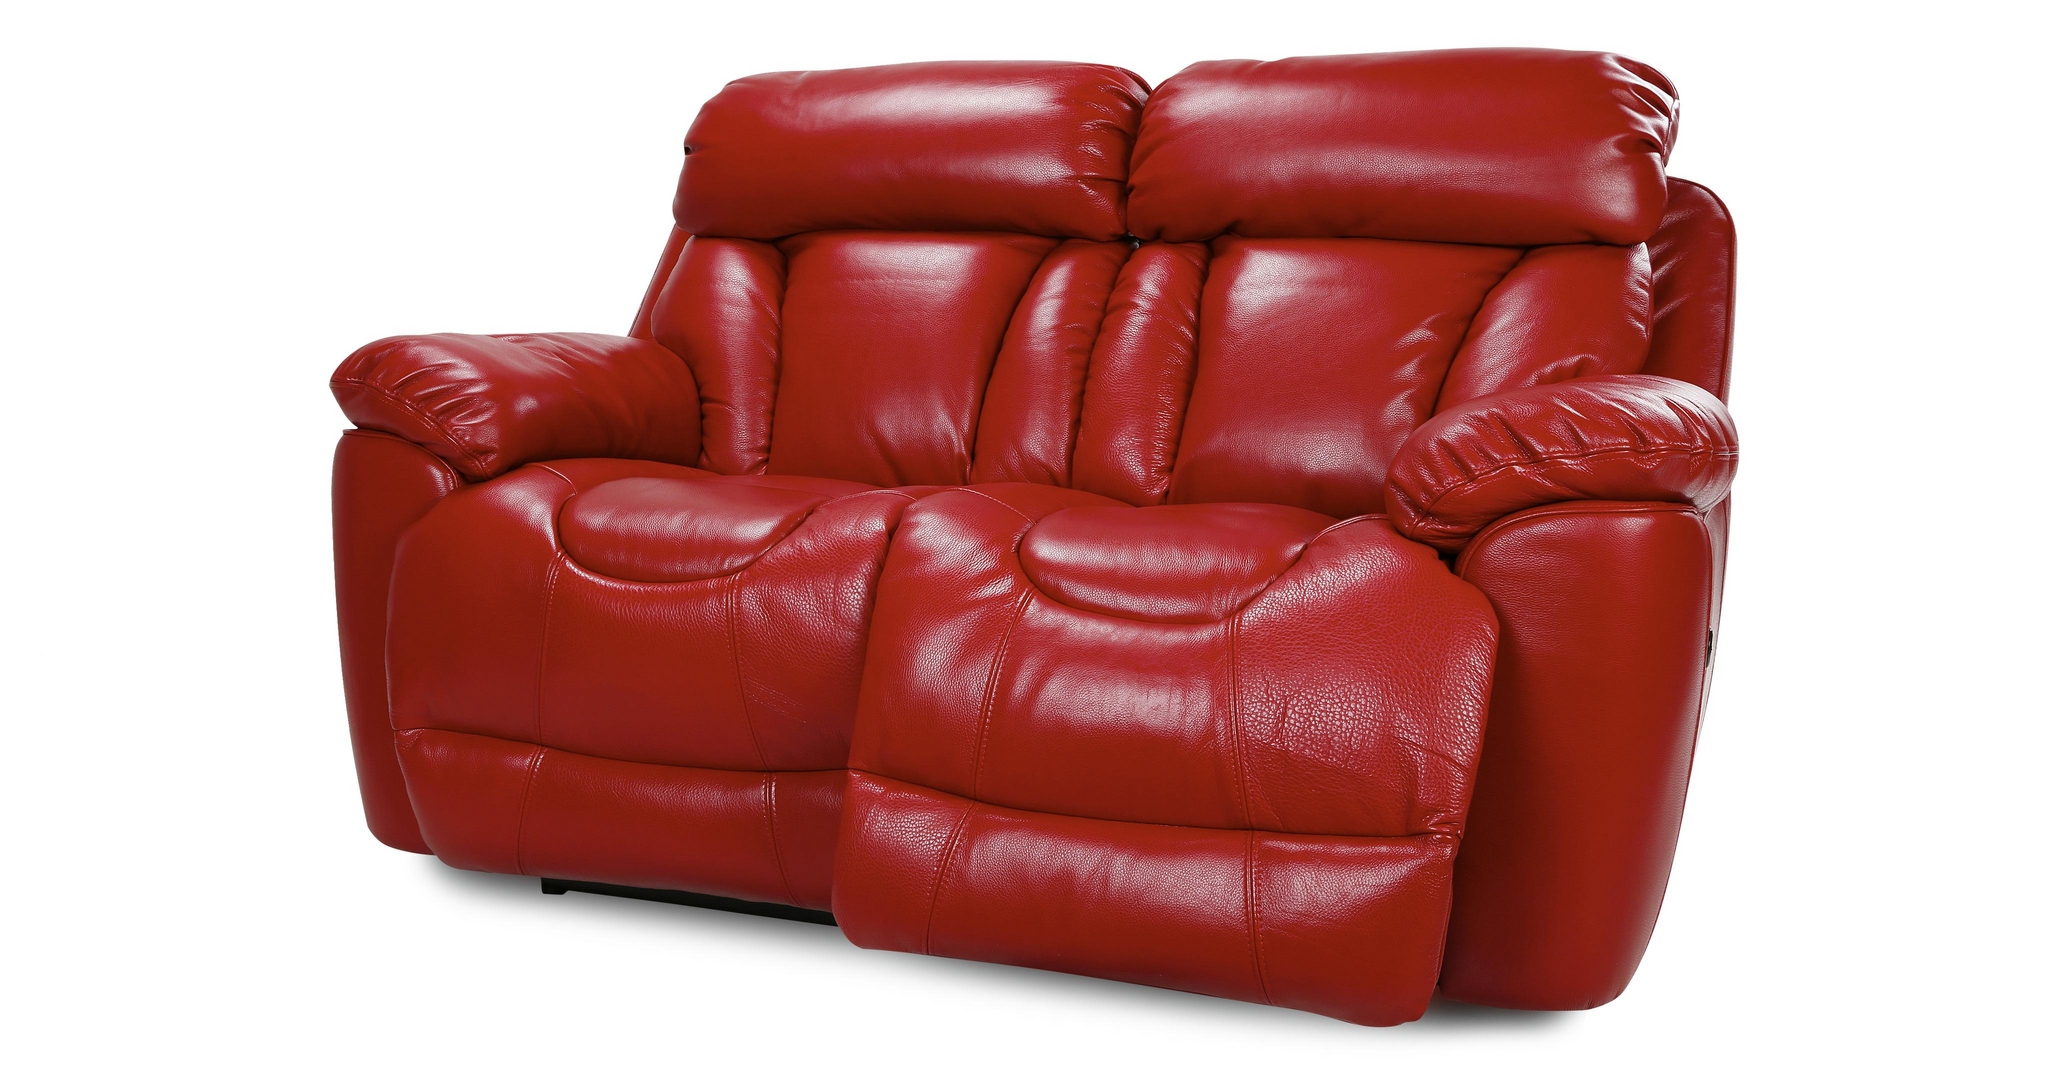 Dfs supreme settee 2 seater red leather power recliner for Red leather sectional reclining sofa